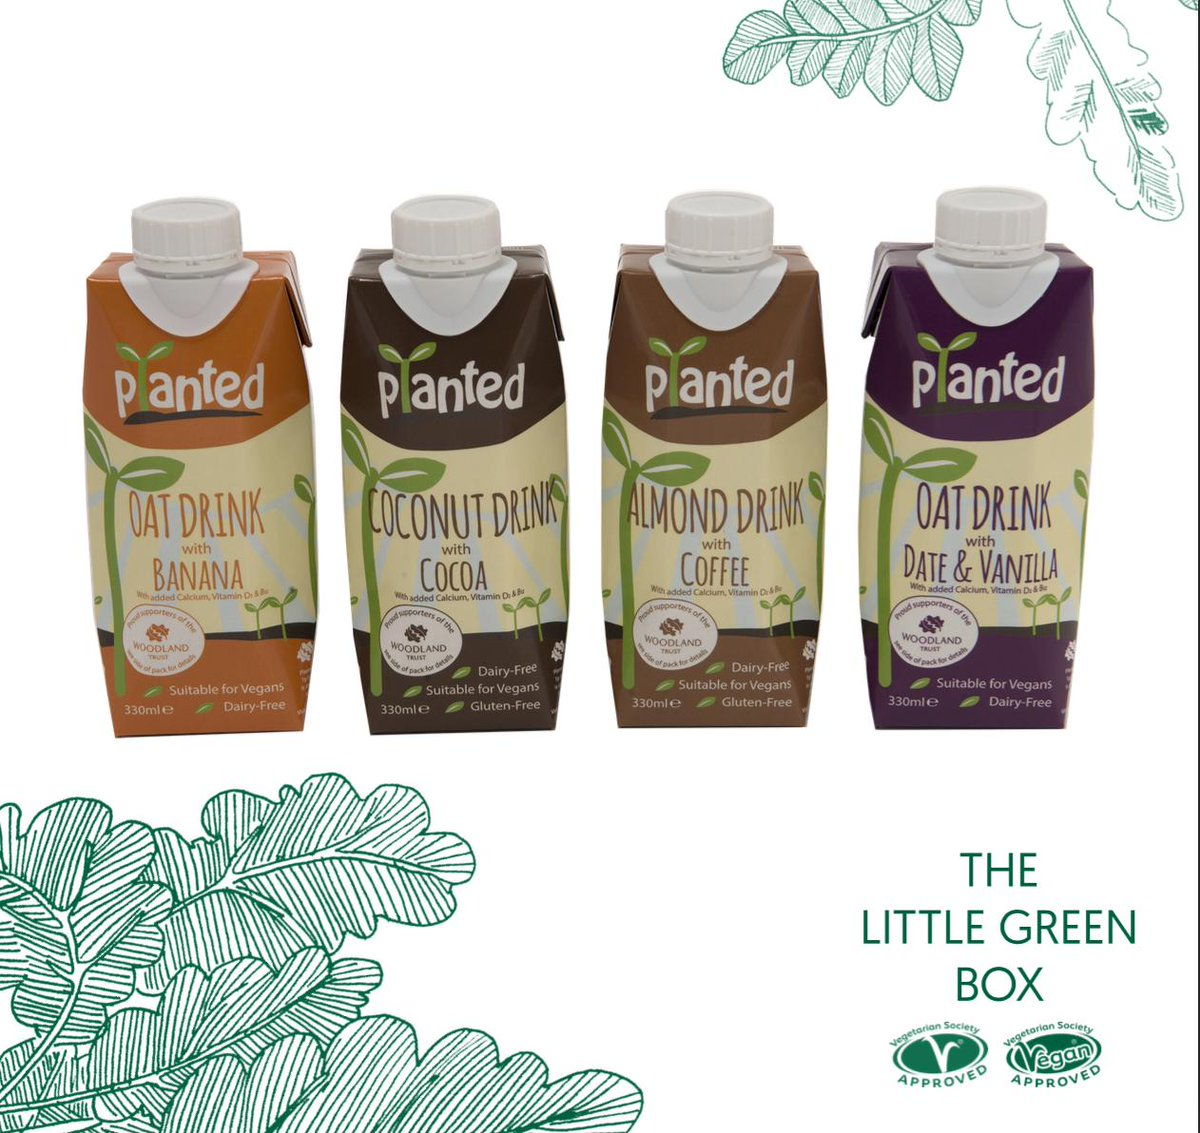 Six days to go until the first #Freshers2019 fair! The final vegan treat in our #LittleGreenBox is @plantedrange flavoured nut milk! A fab refresher for freshers week. 👅🤘Pick up a free box at your university this September. 🌏#EatToBeatClimateChange